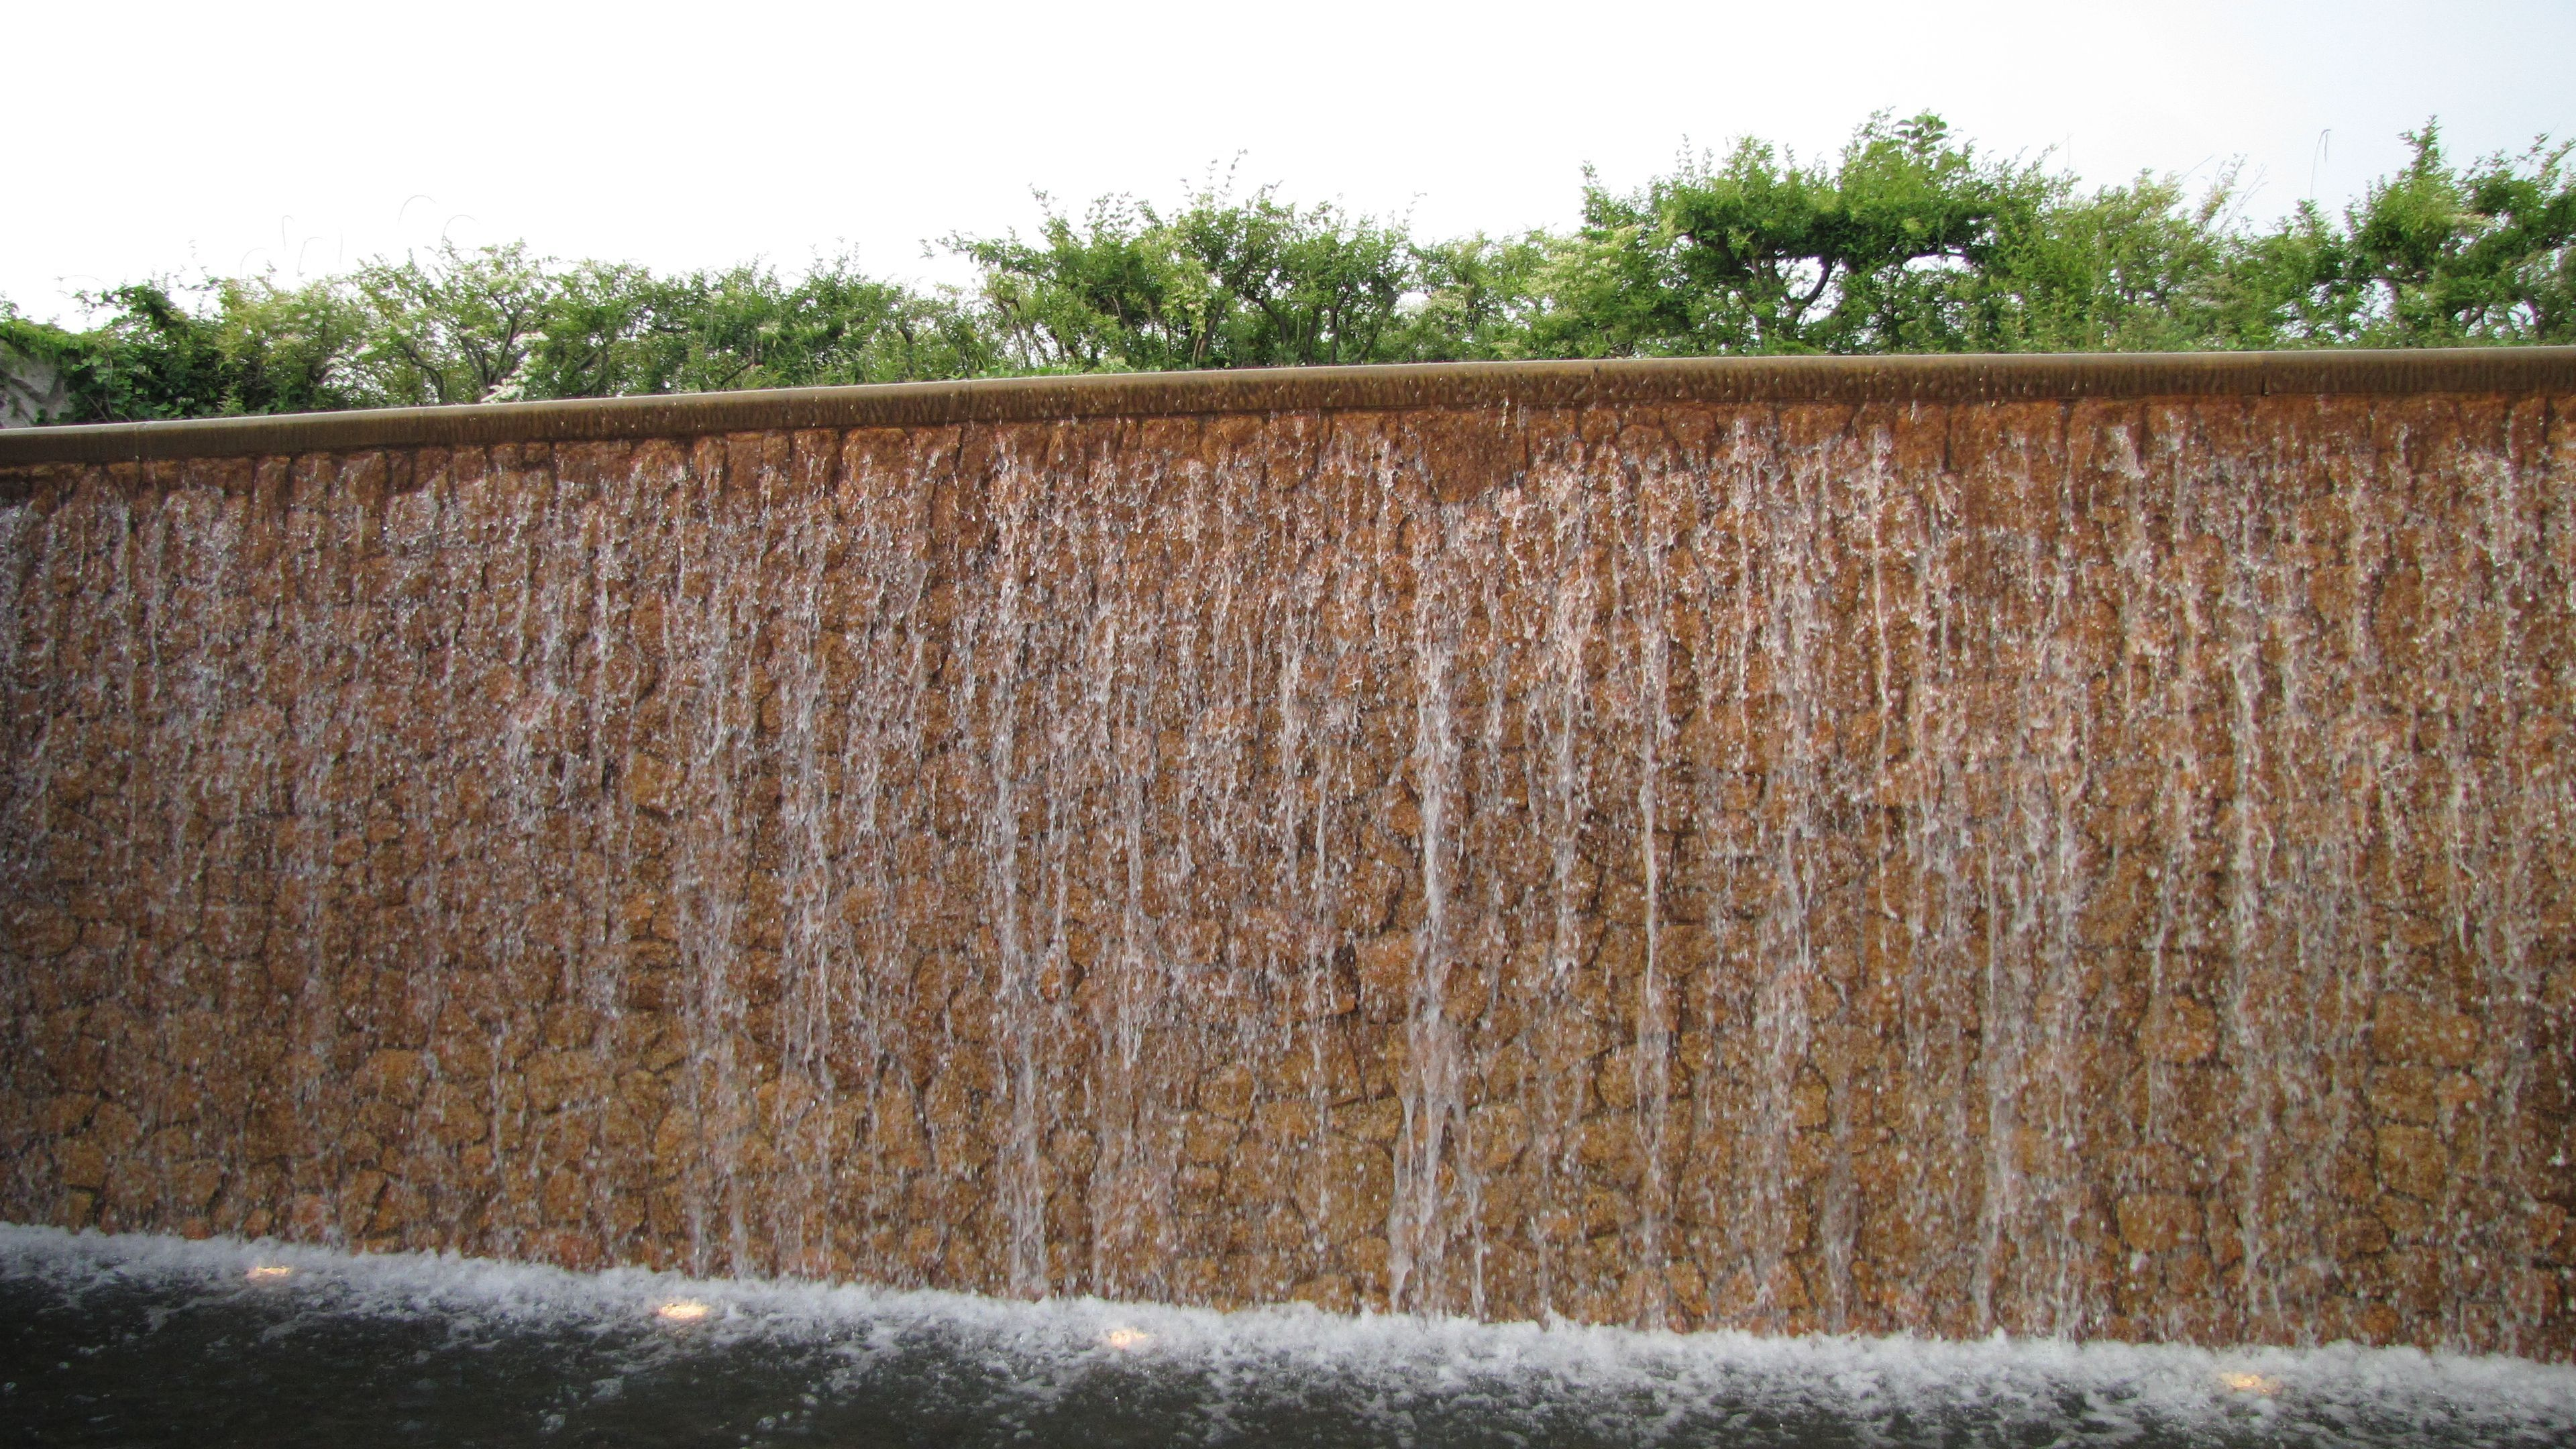 Diy water feature wall - Water Walls For Homes Leave A Reply Click Here To Cancel Reply Water Walls For Homes Leave A Reply Click Here To Cancel Reply Construction Tips Pinterest